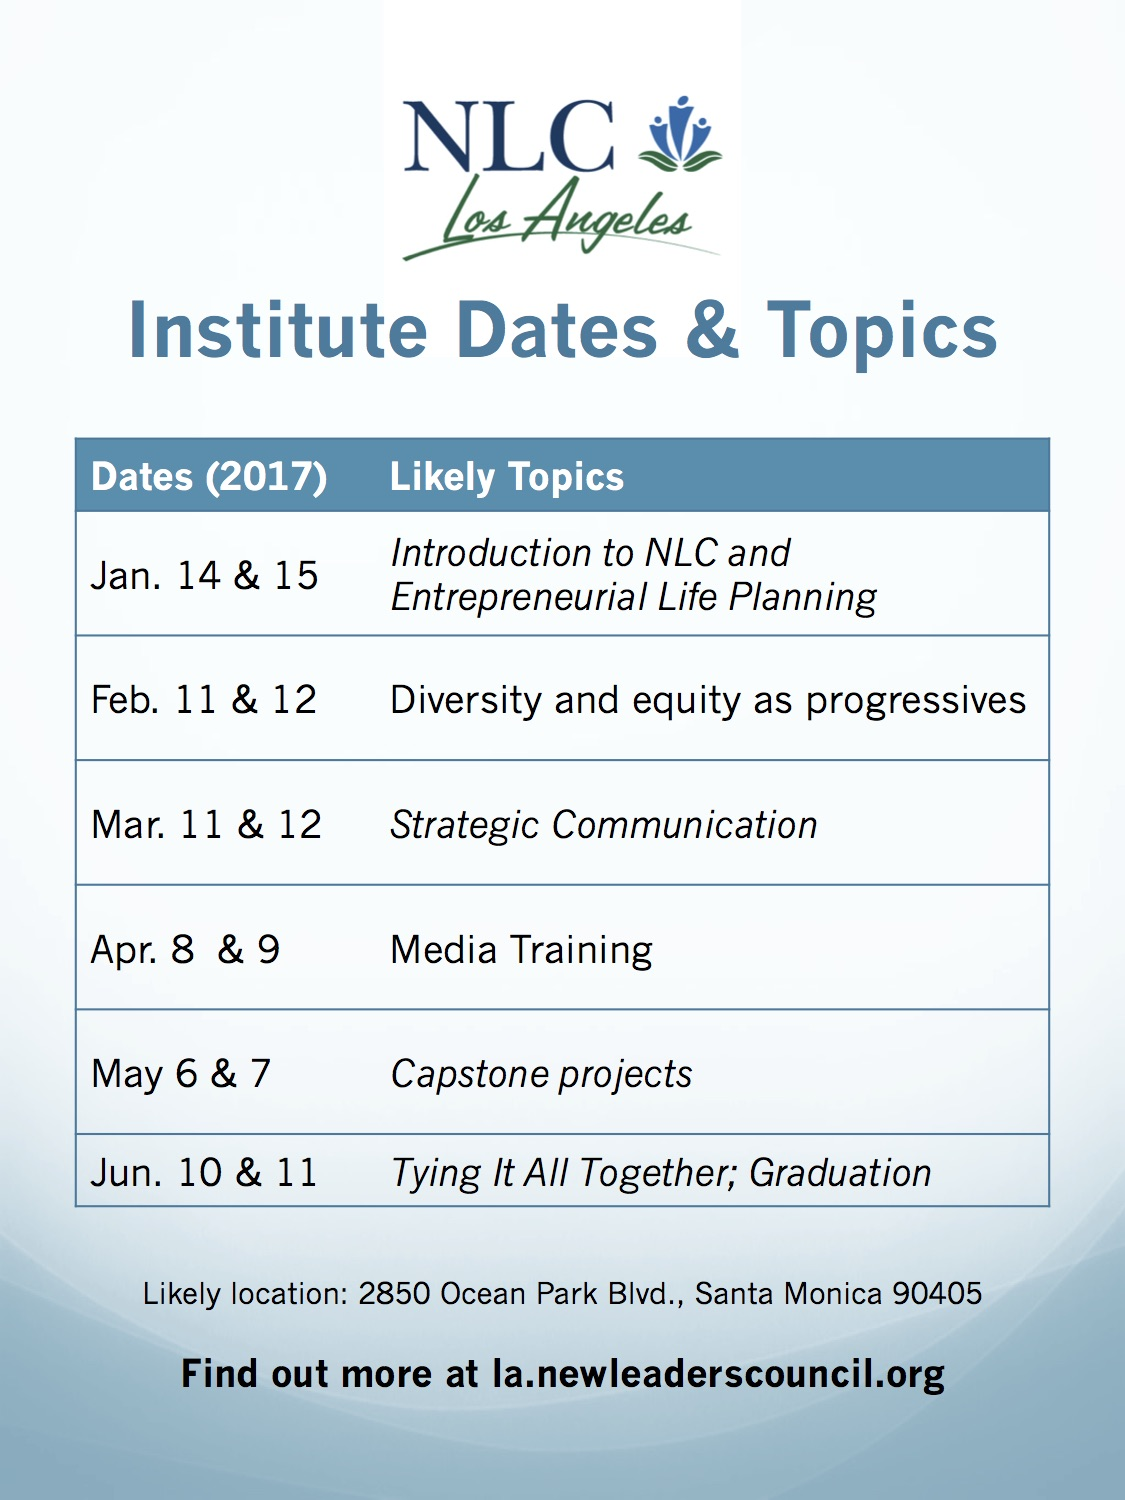 NLC_LA_Dates_and_Topics_2017.jpg